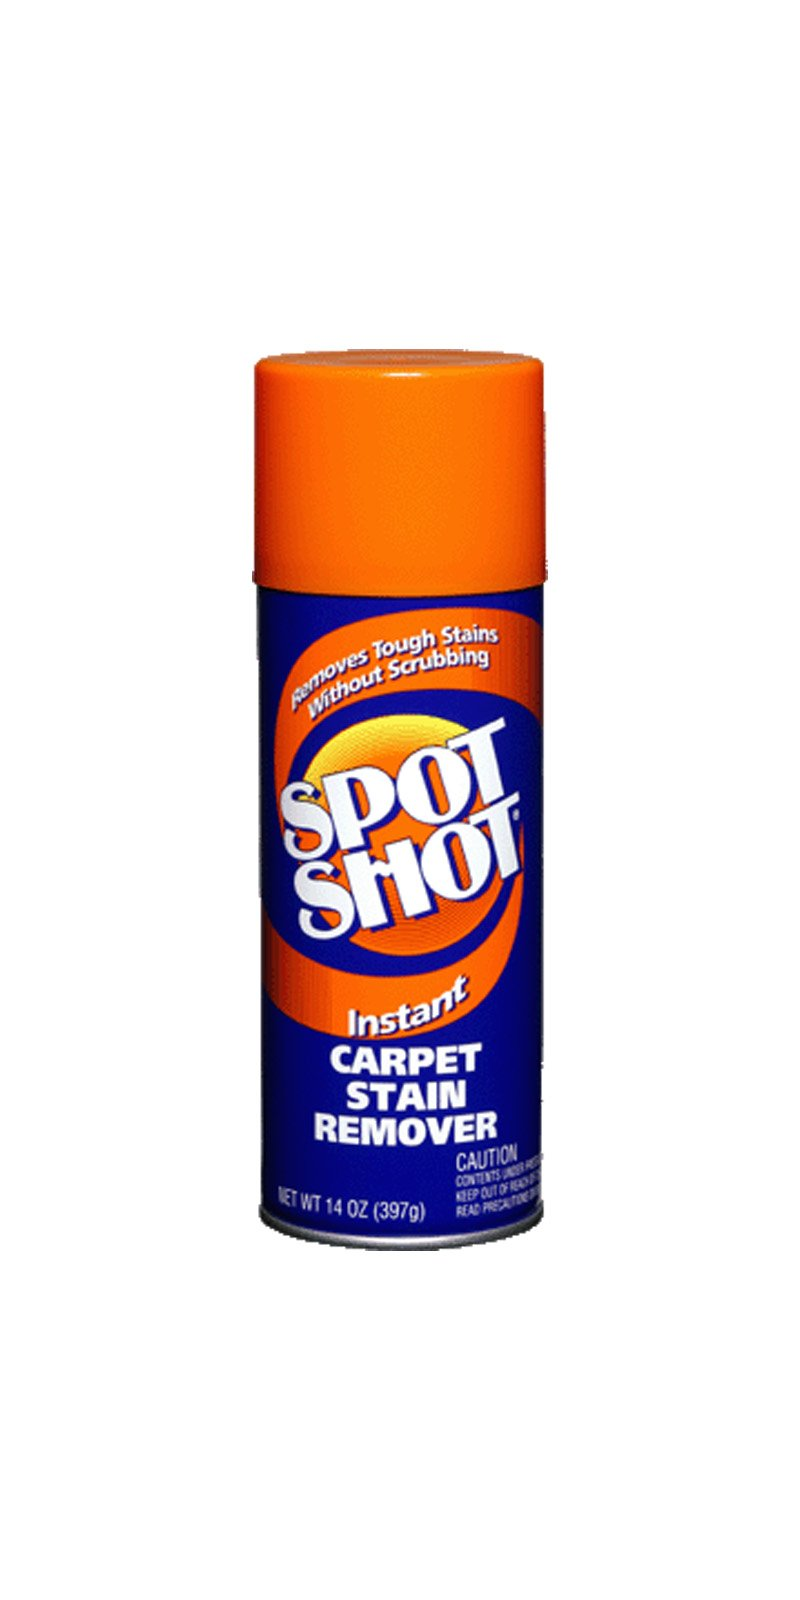 Spot Shot 009128 Aerosol Instant Carpet Stain Remover, 14 oz. (Pack of 12) by Spot Shot